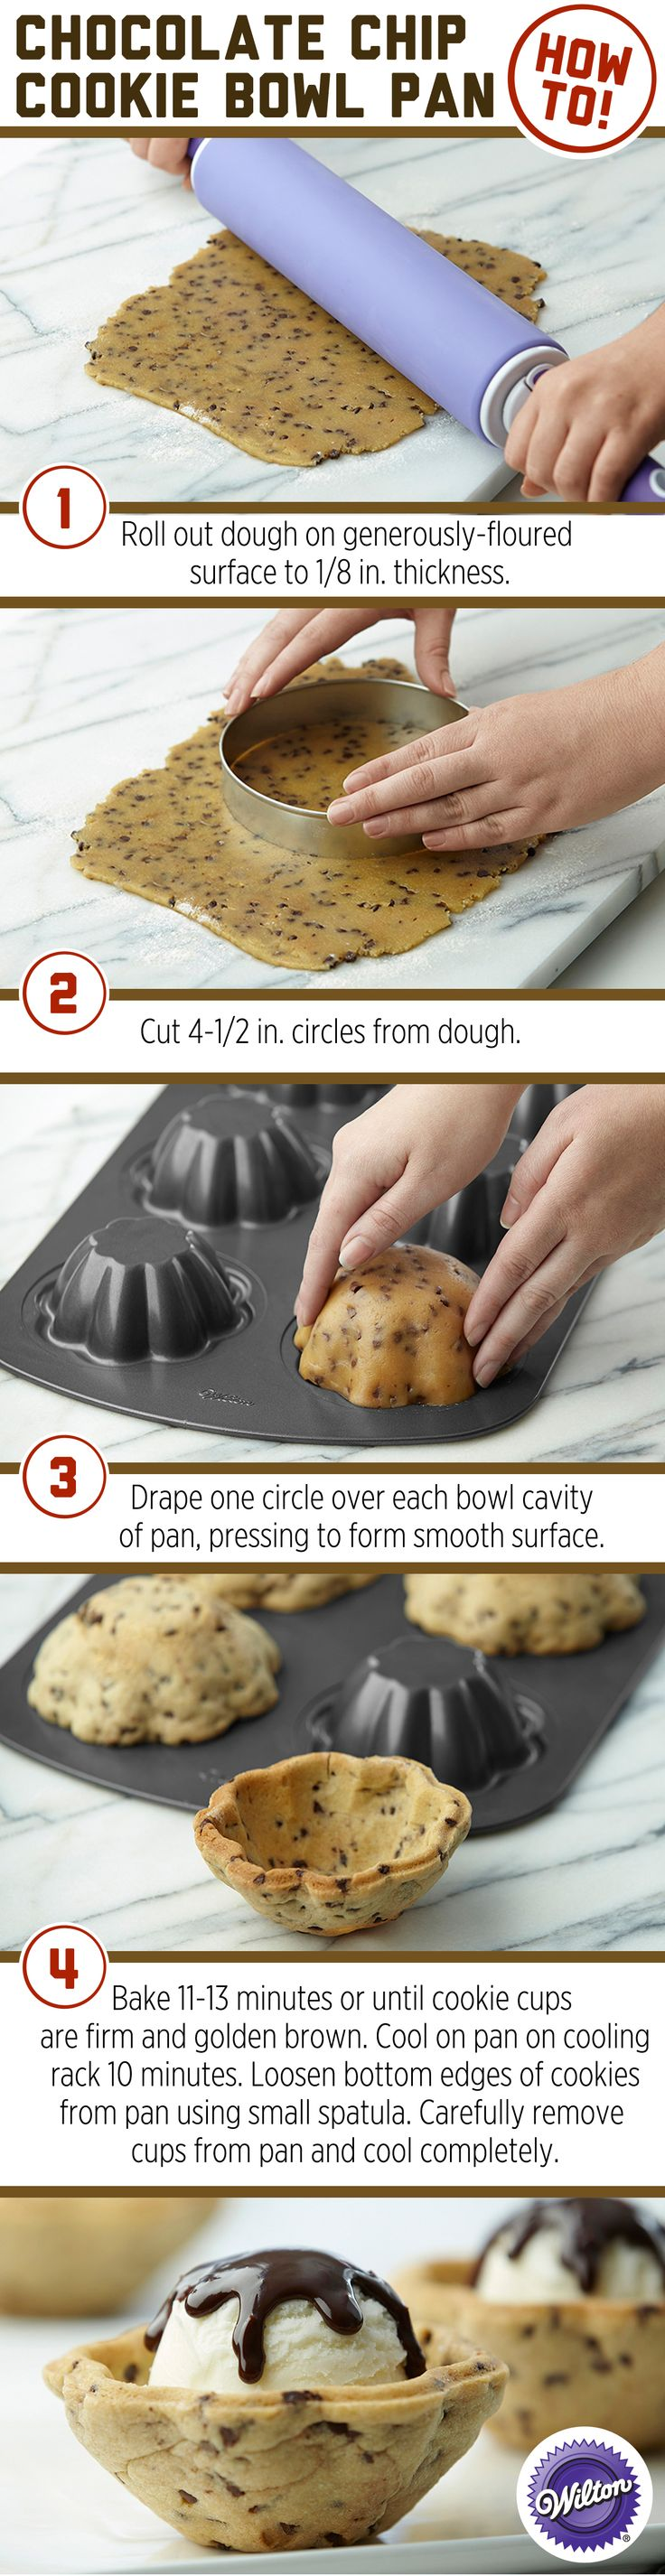 How to make a Chocolate Chip Cookie Bowl using the Wilton Cookie Bowl Pan